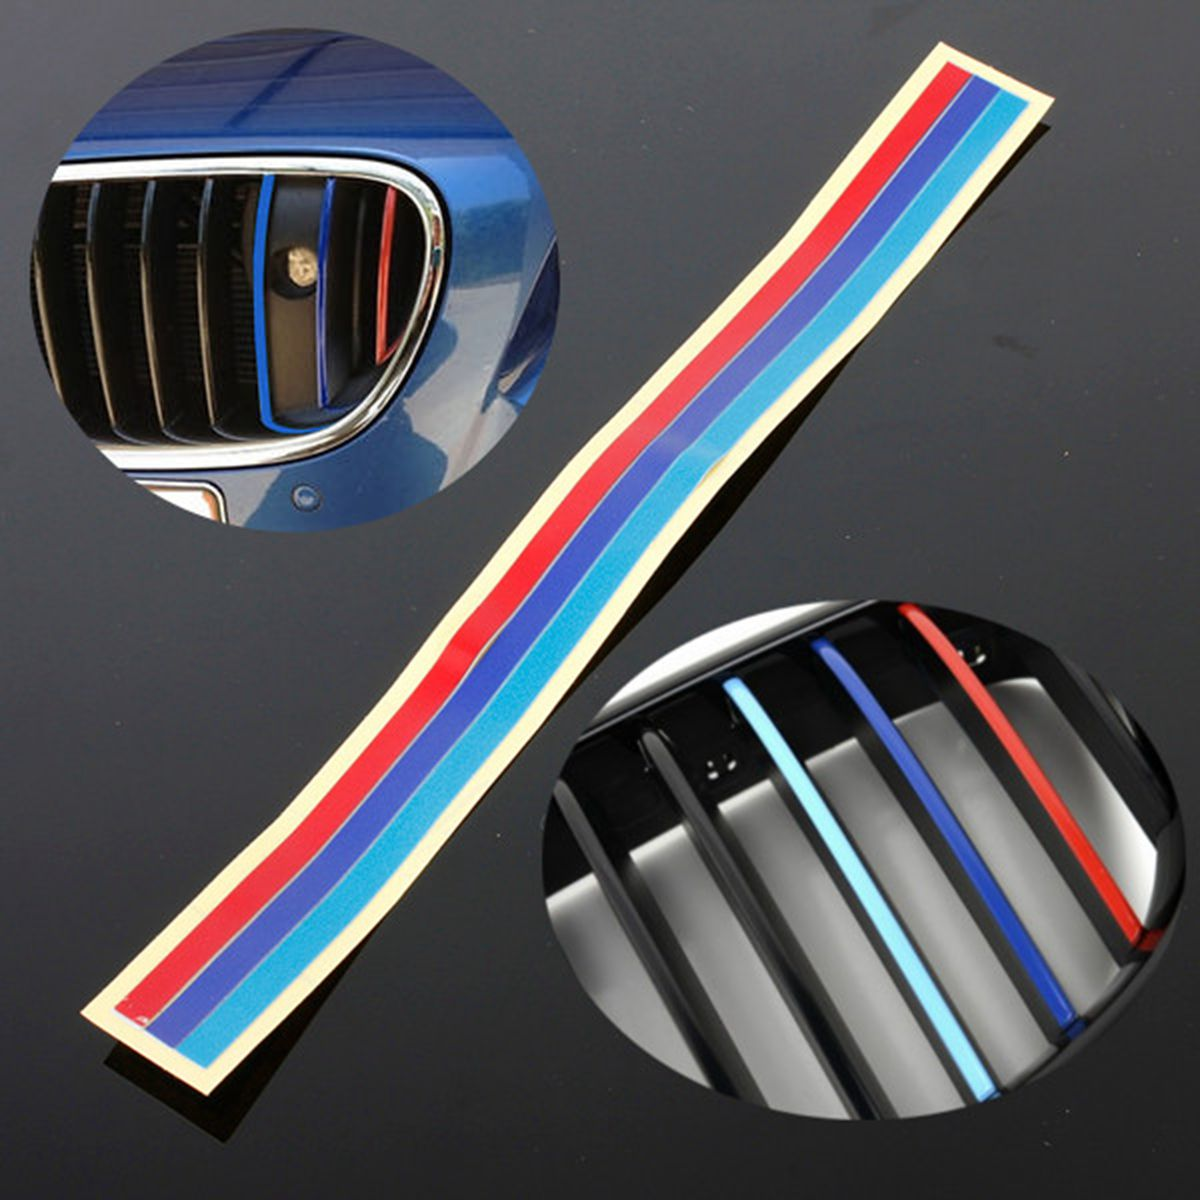 Bmwfort Package Includes: 3 Color Grill Vinyl Strip Sticker Decal For BMW M3 M5 E36